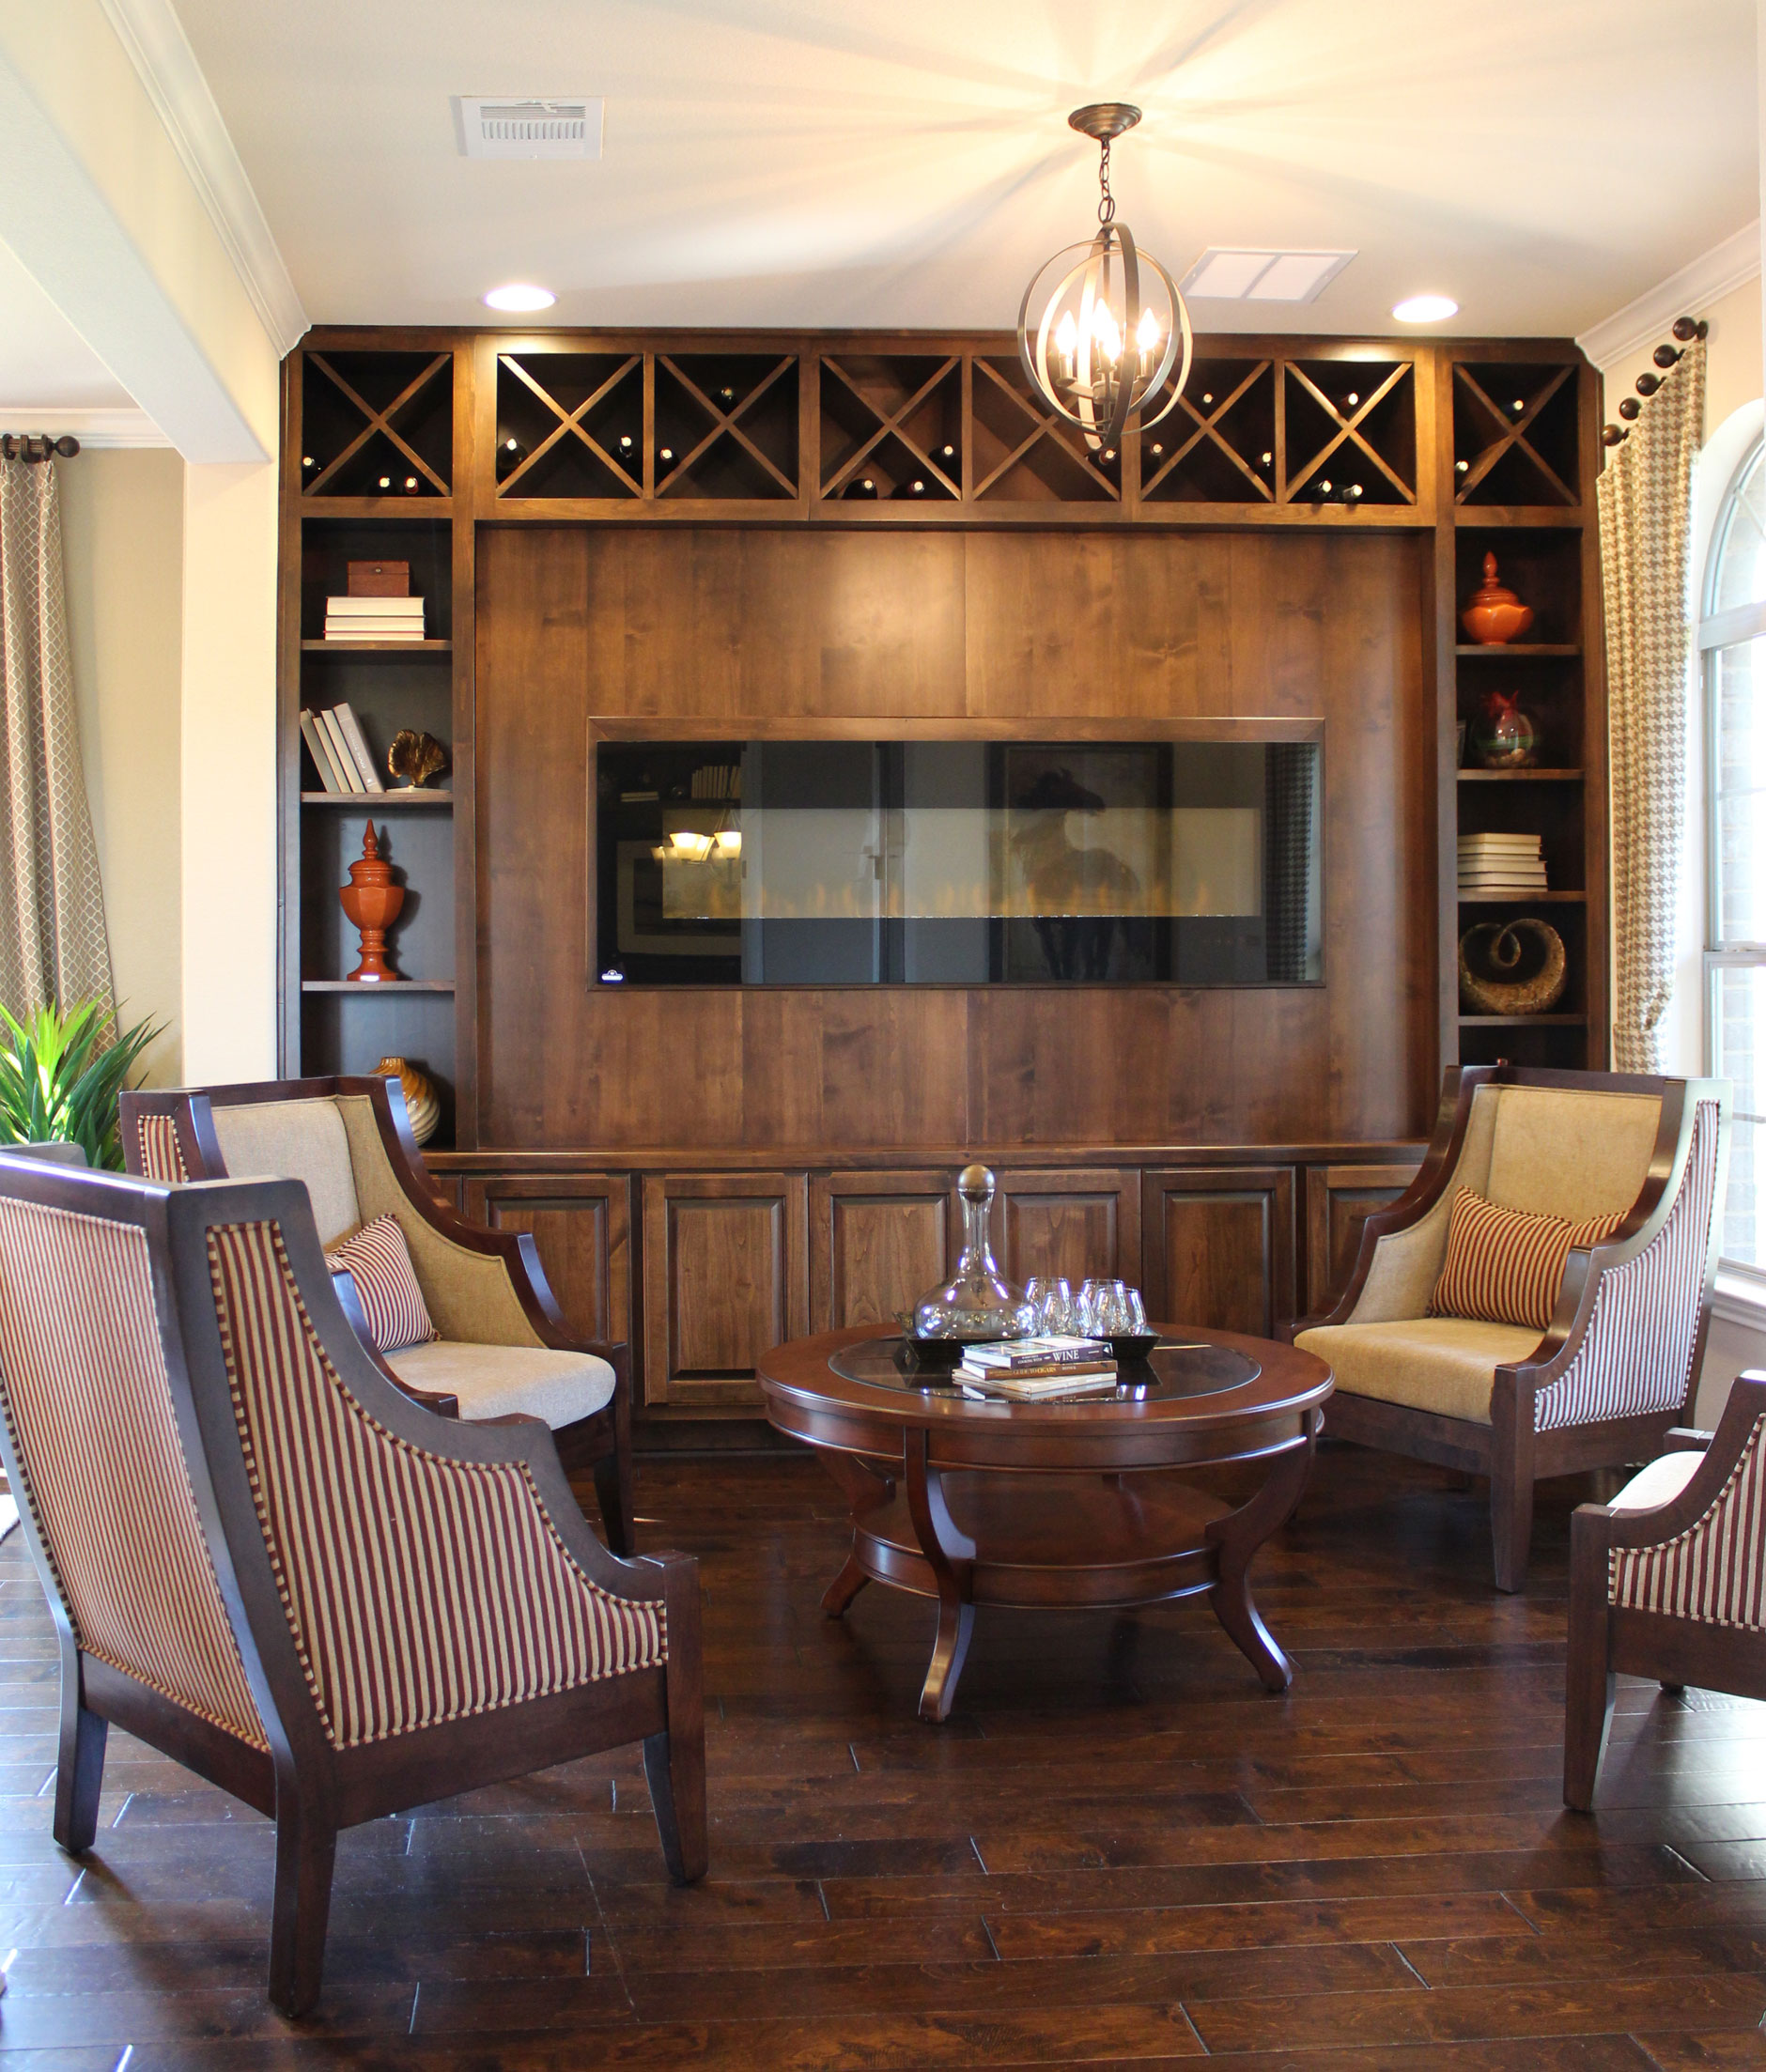 Burrows Cabinets wood fireplace surround with bookshelves in alder with verona finish